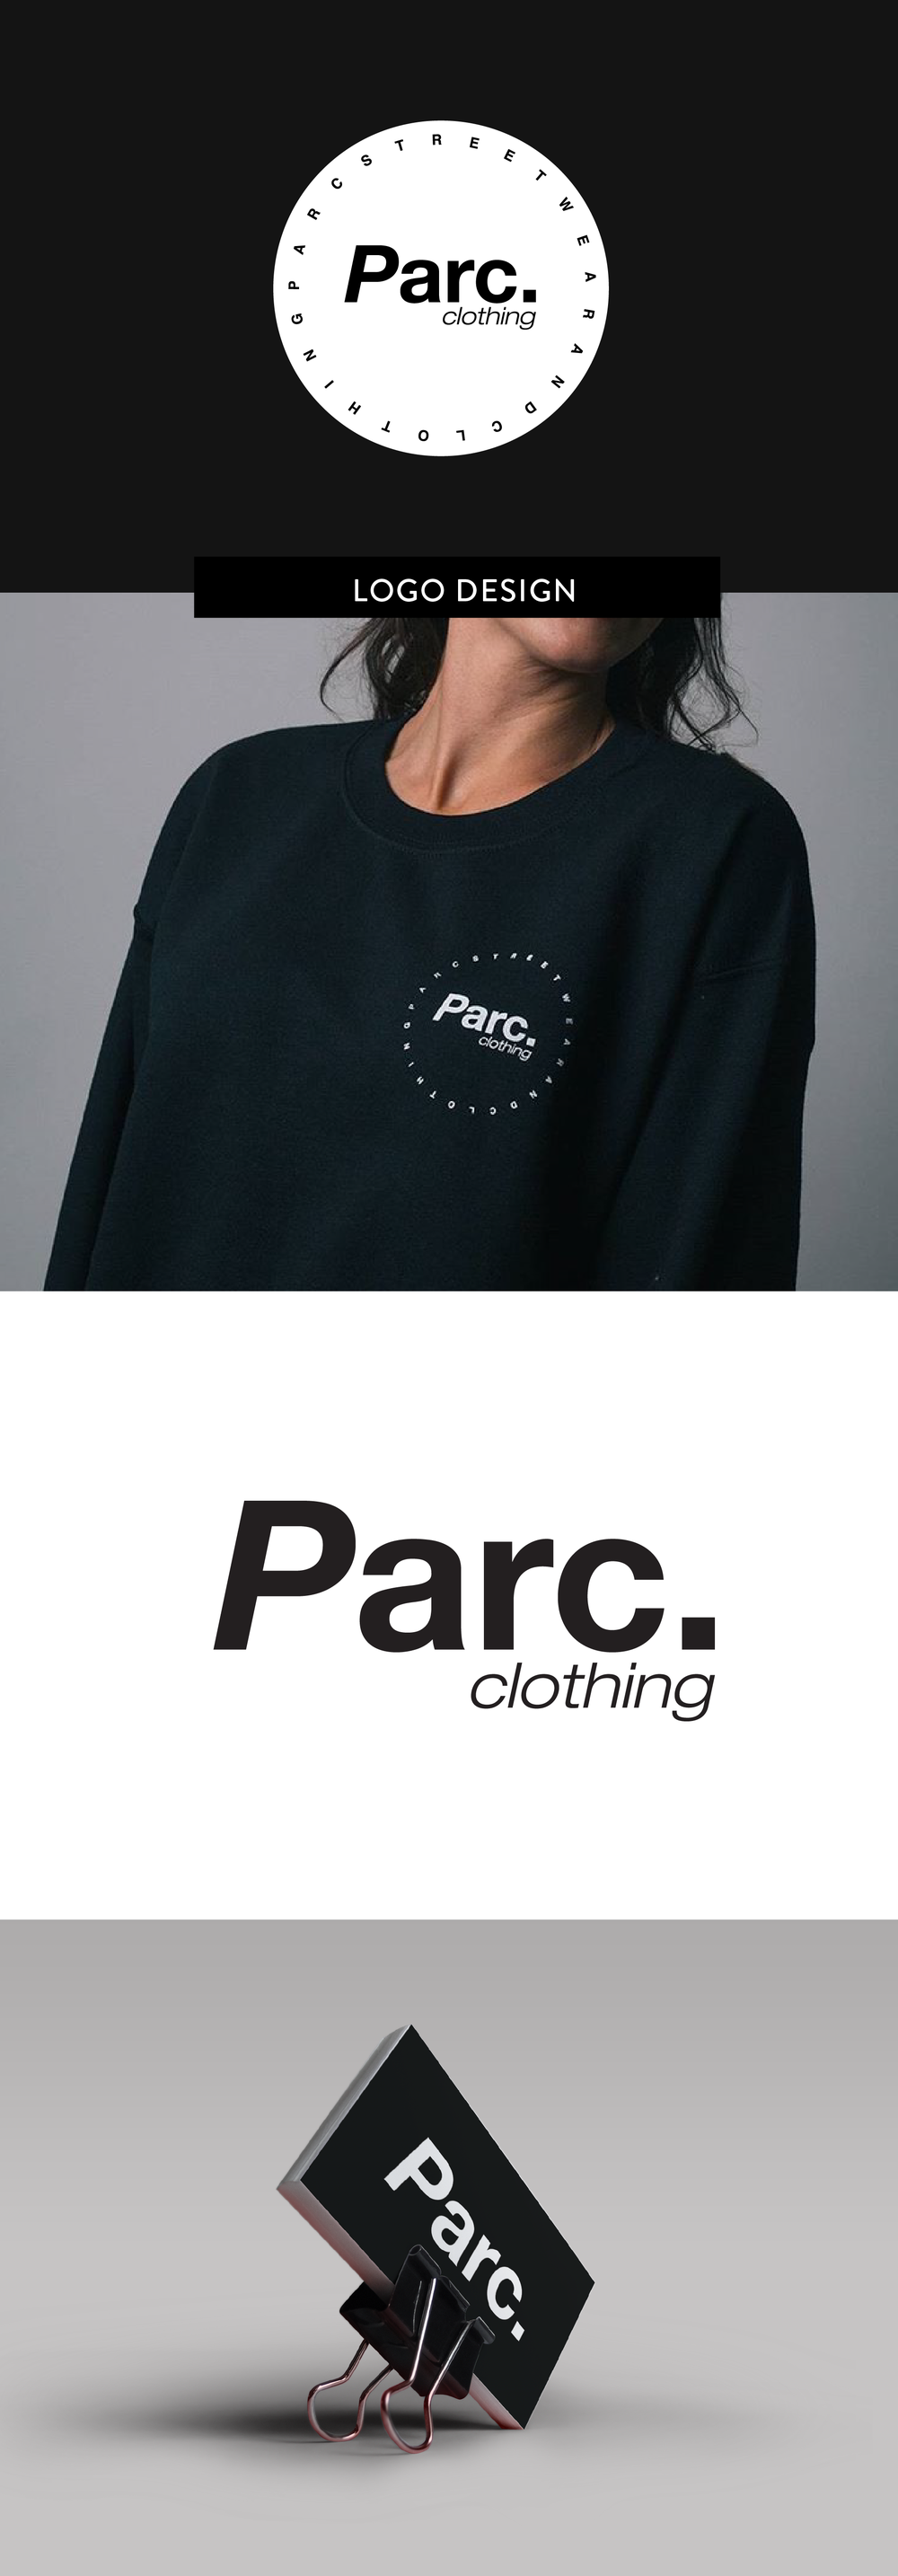 Logo design for Parc Clothing by Salt Design Co.